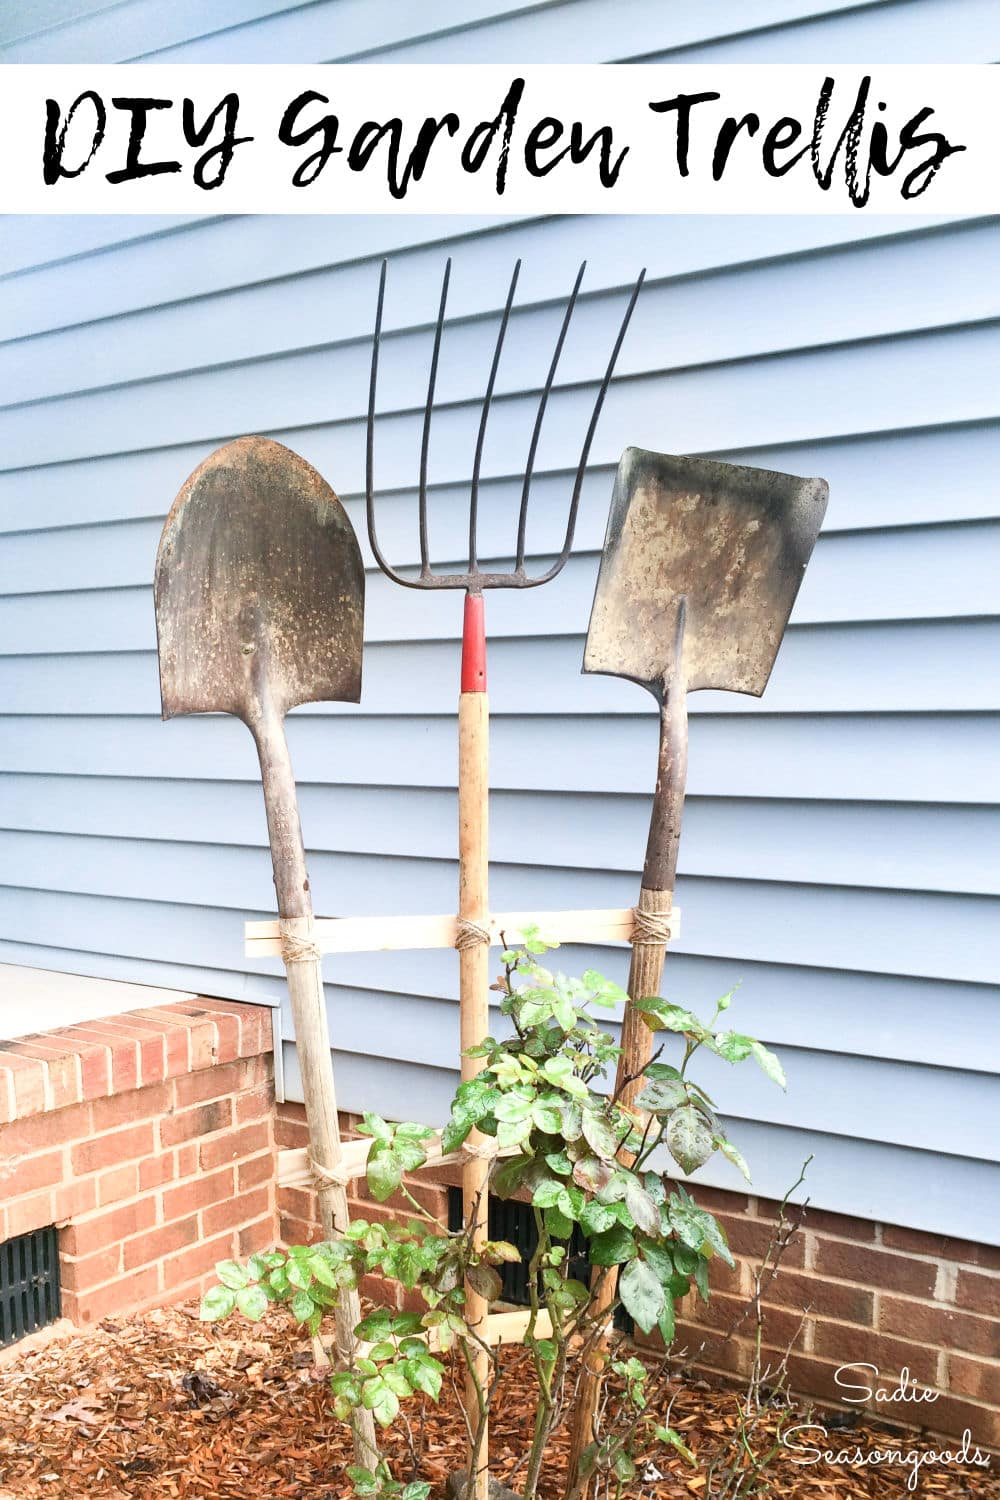 Vintage garden tools as a decorative trellis